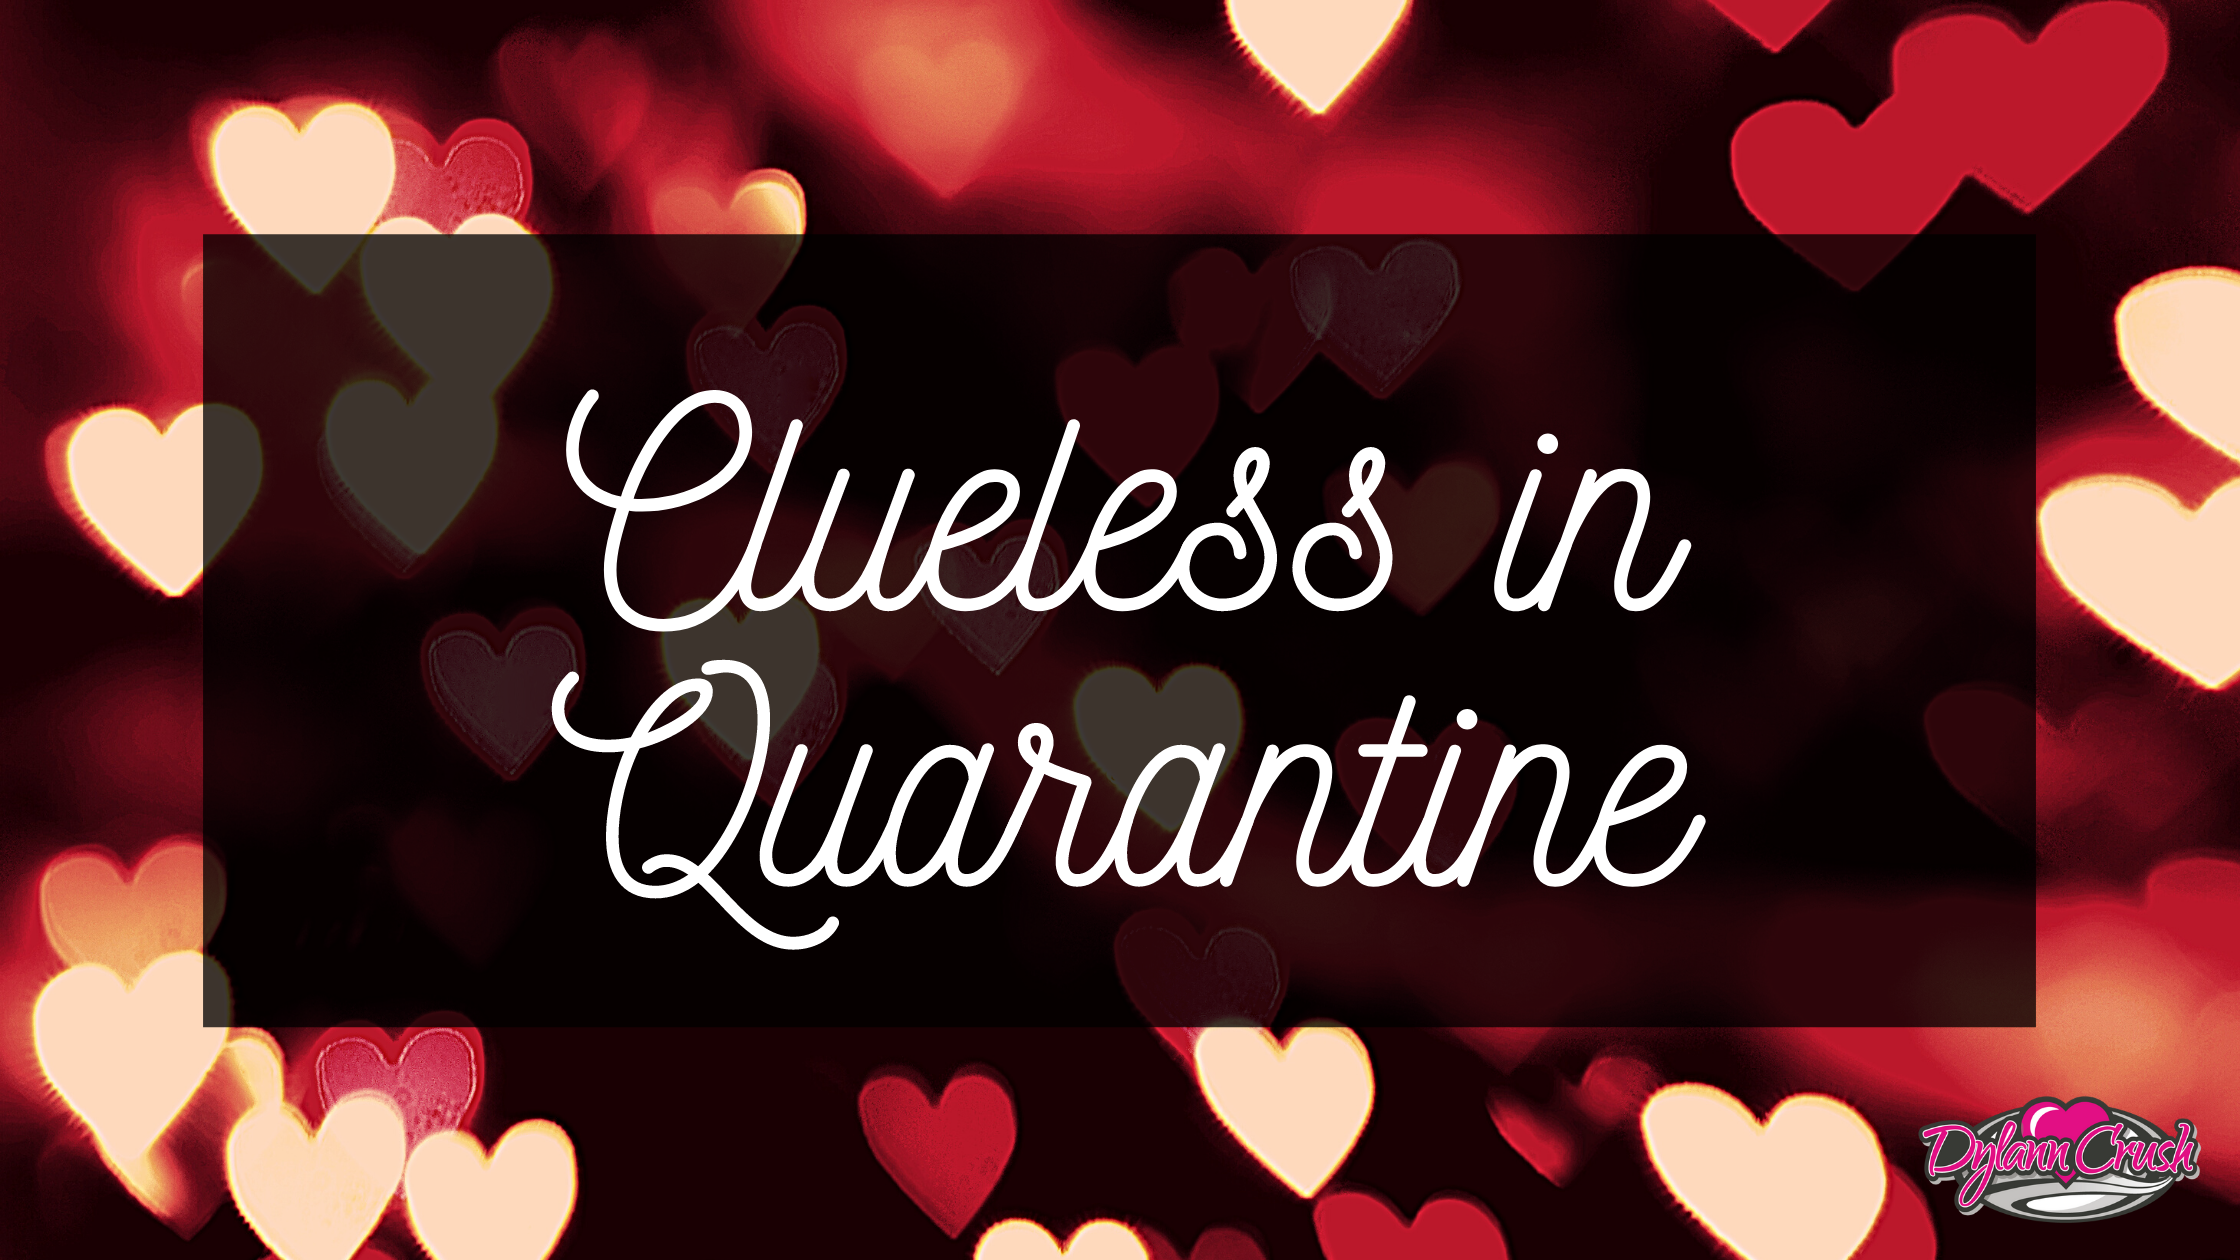 Clueless in Quarantine